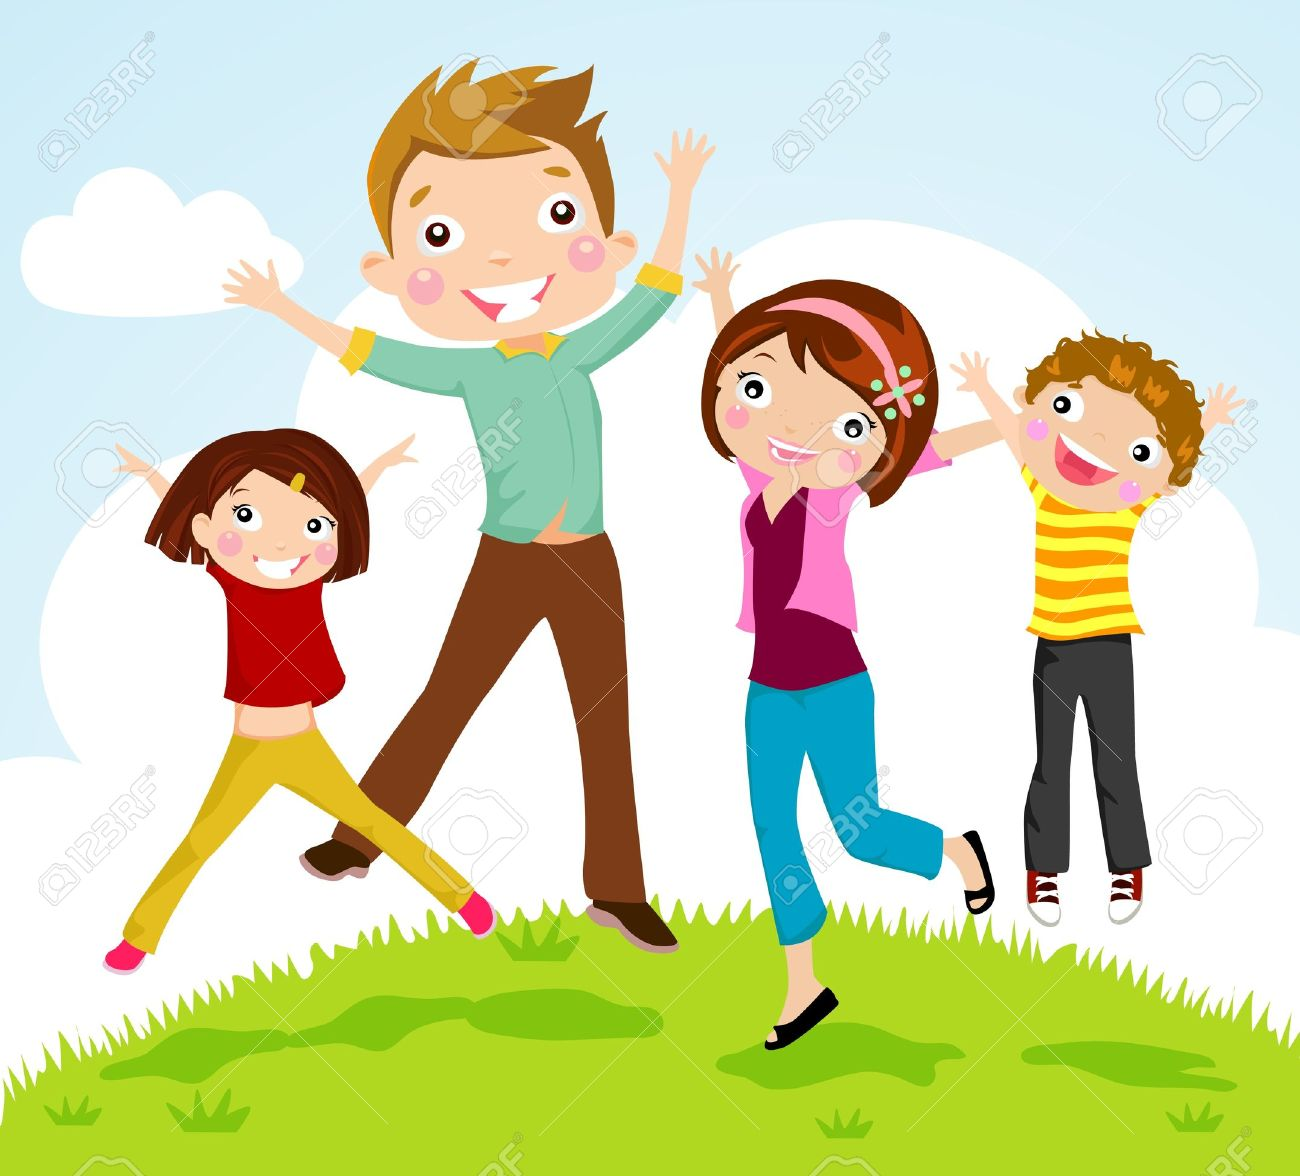 Family Jumping Royalty Free Cliparts, Vectors, And Stock ...